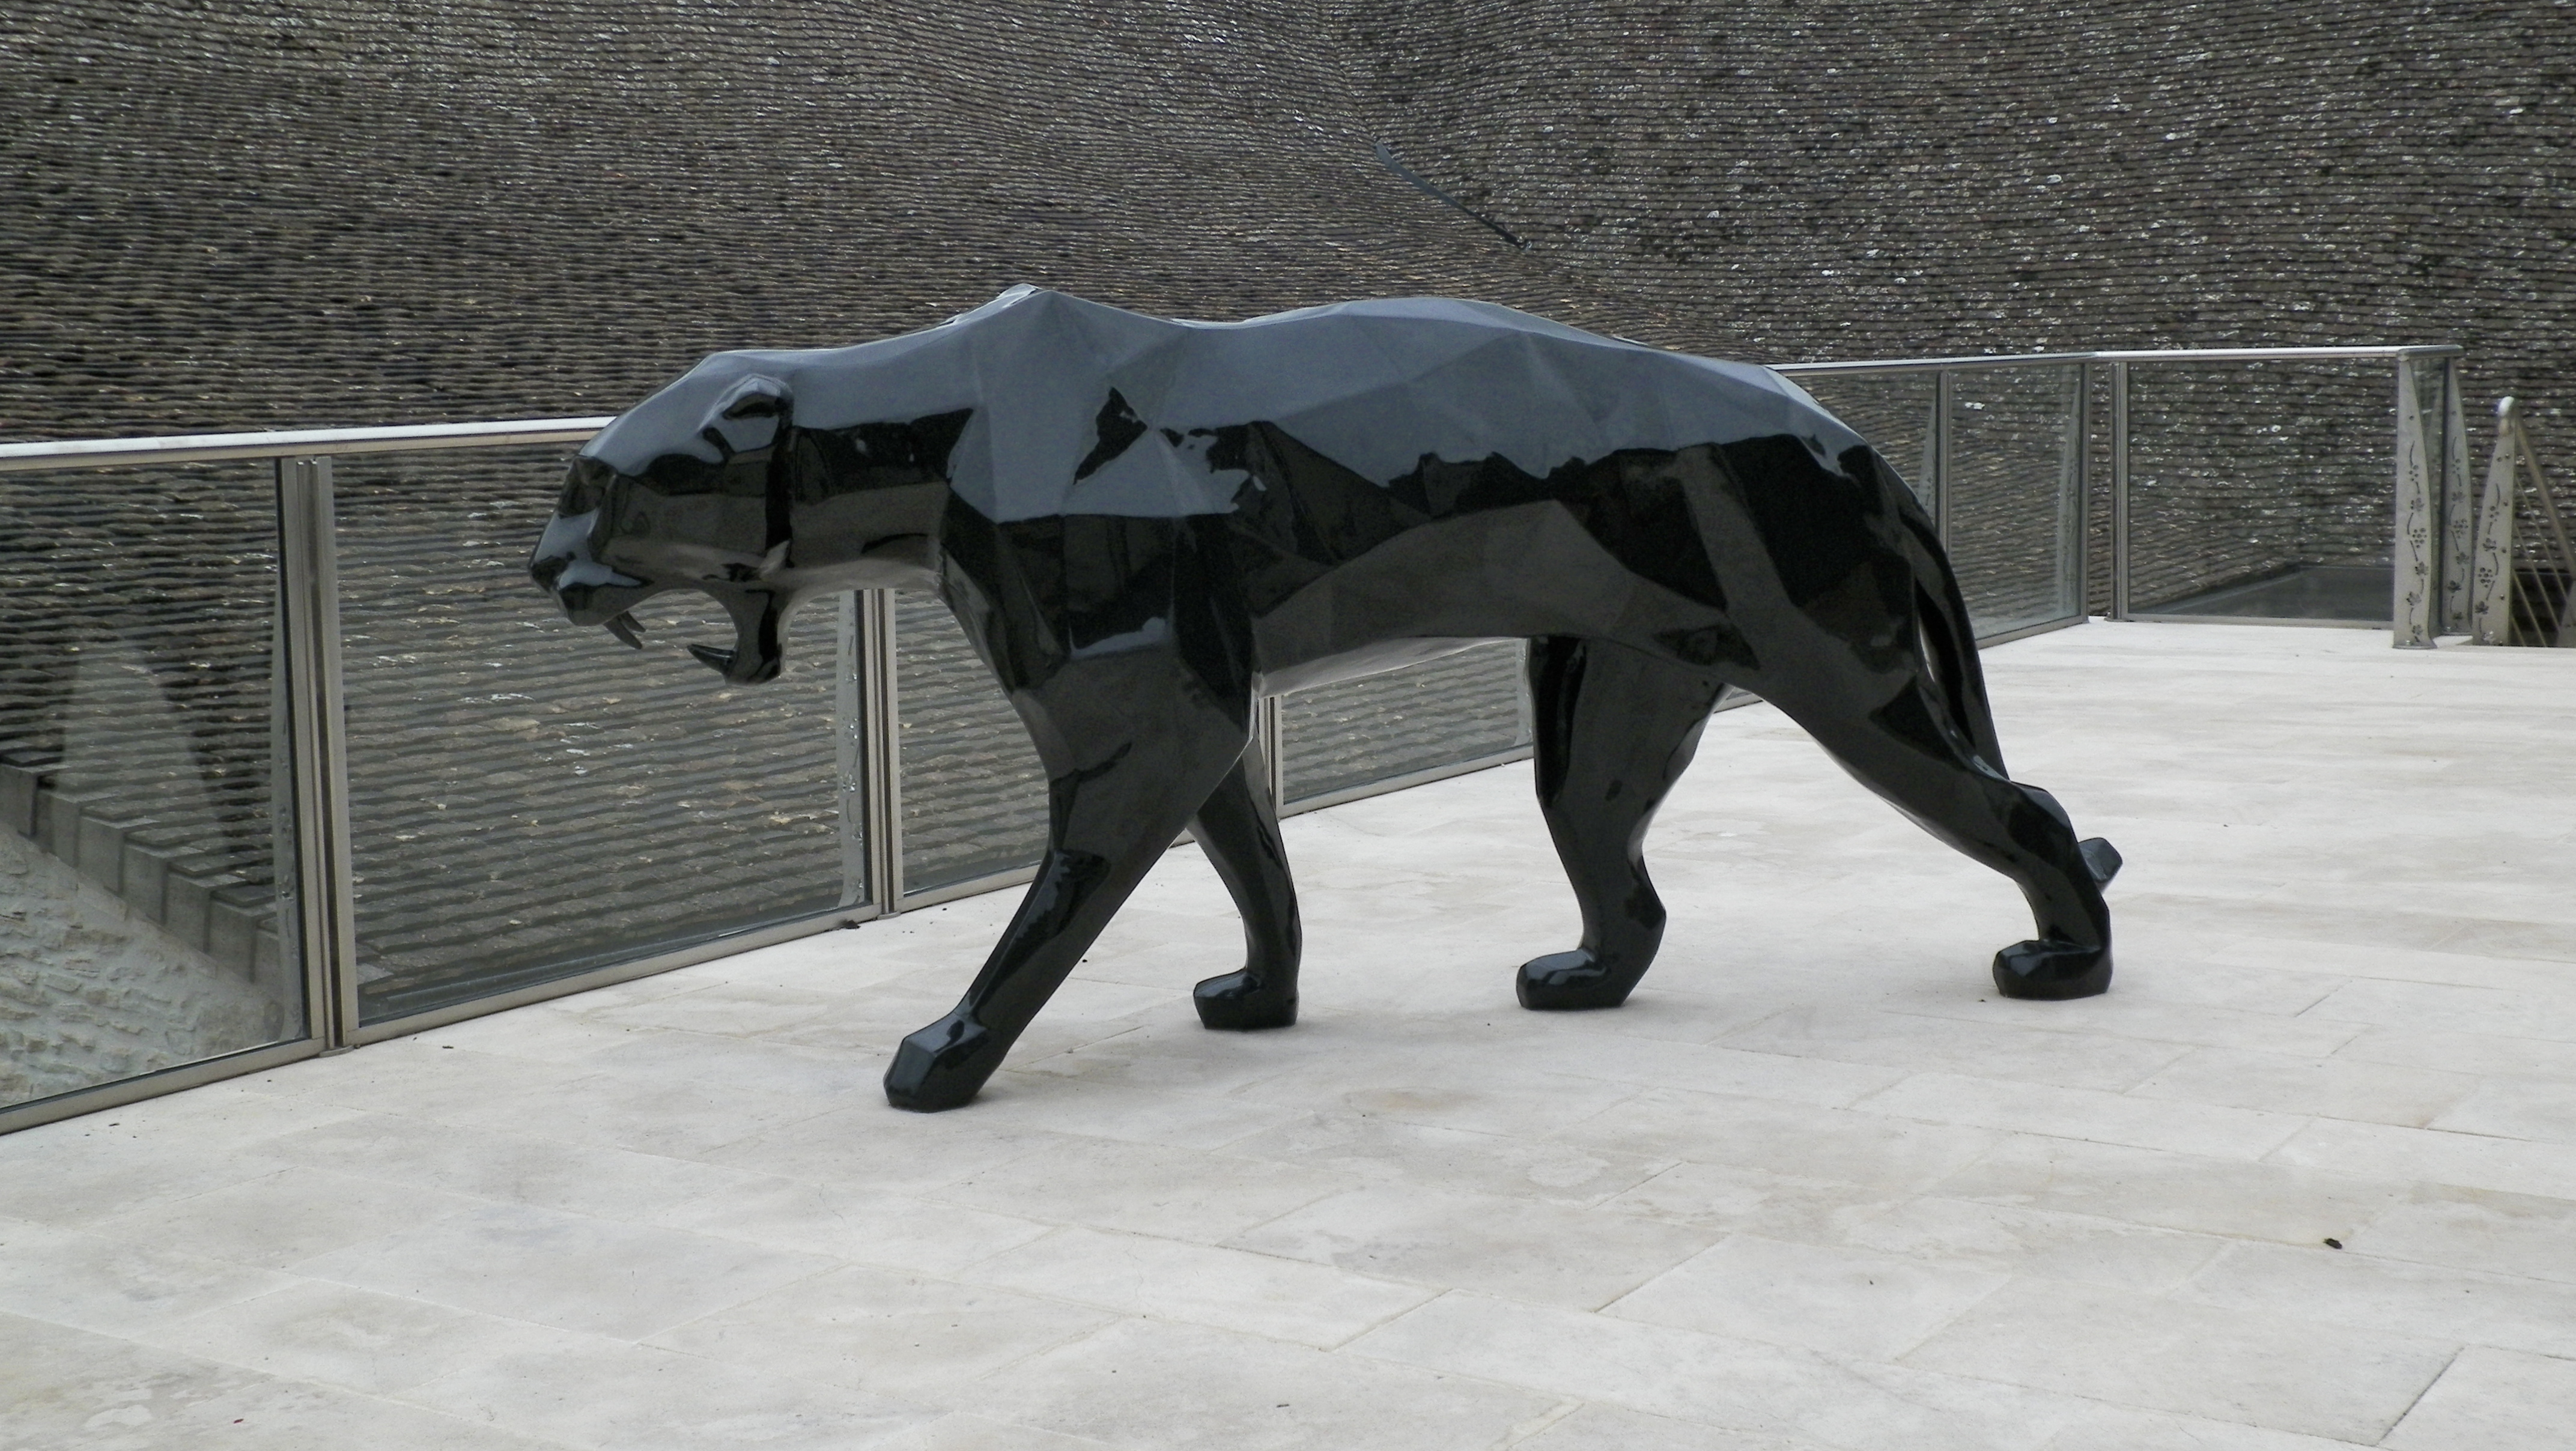 Panther statue, Statue, Panther, Black, HQ Photo